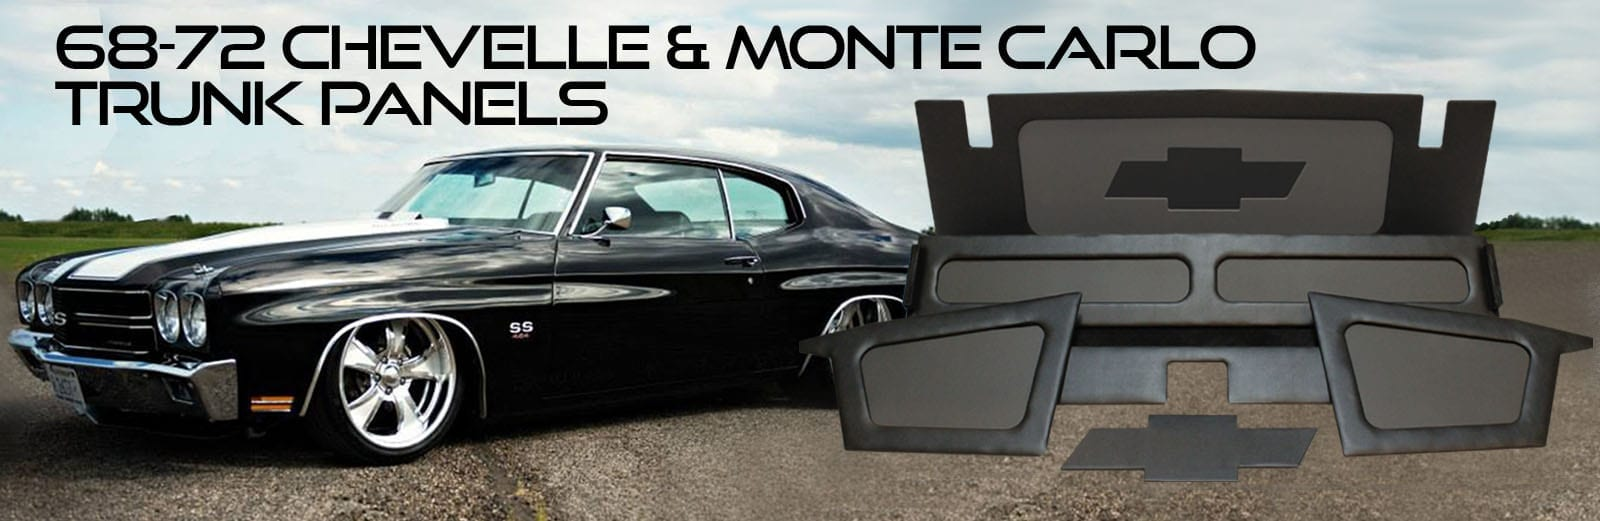 Chevelle and Monte Carlo Trunk Panels